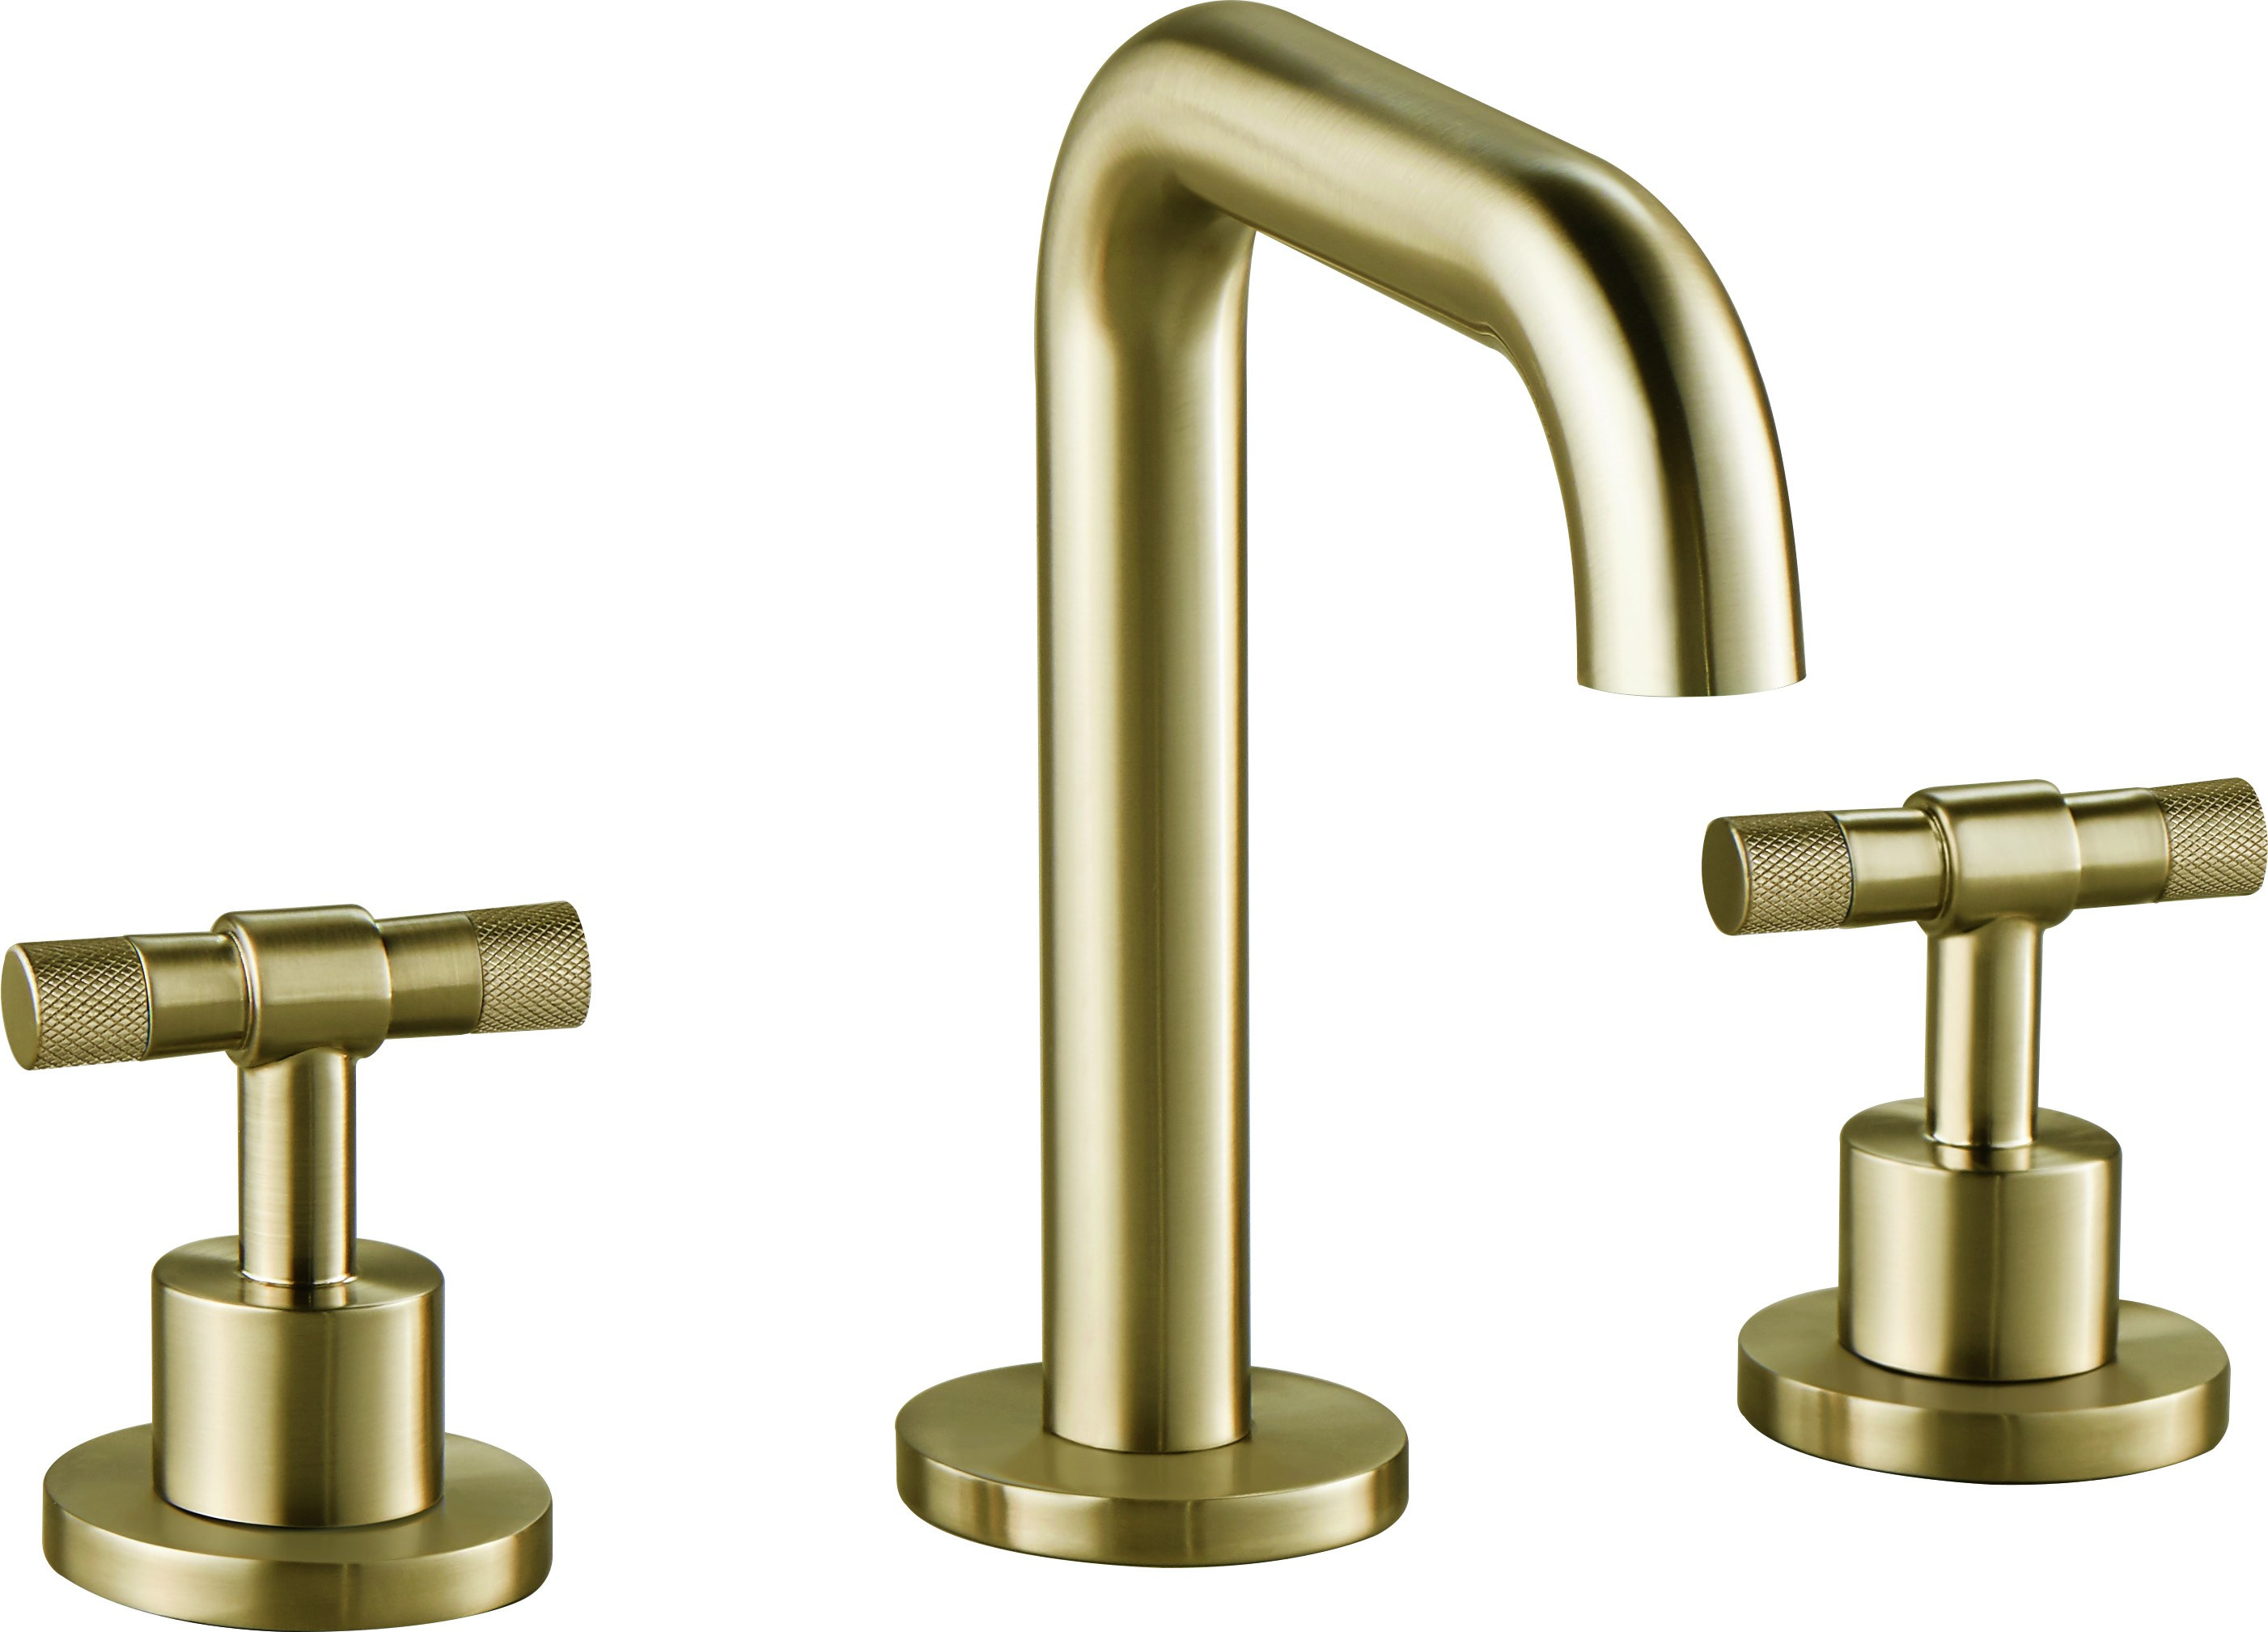 Brizo Bathroom Faucets Incredible Brizo Bathroom Faucet Parts Best Litze Plumbing Pinterest Fixtures Gallery